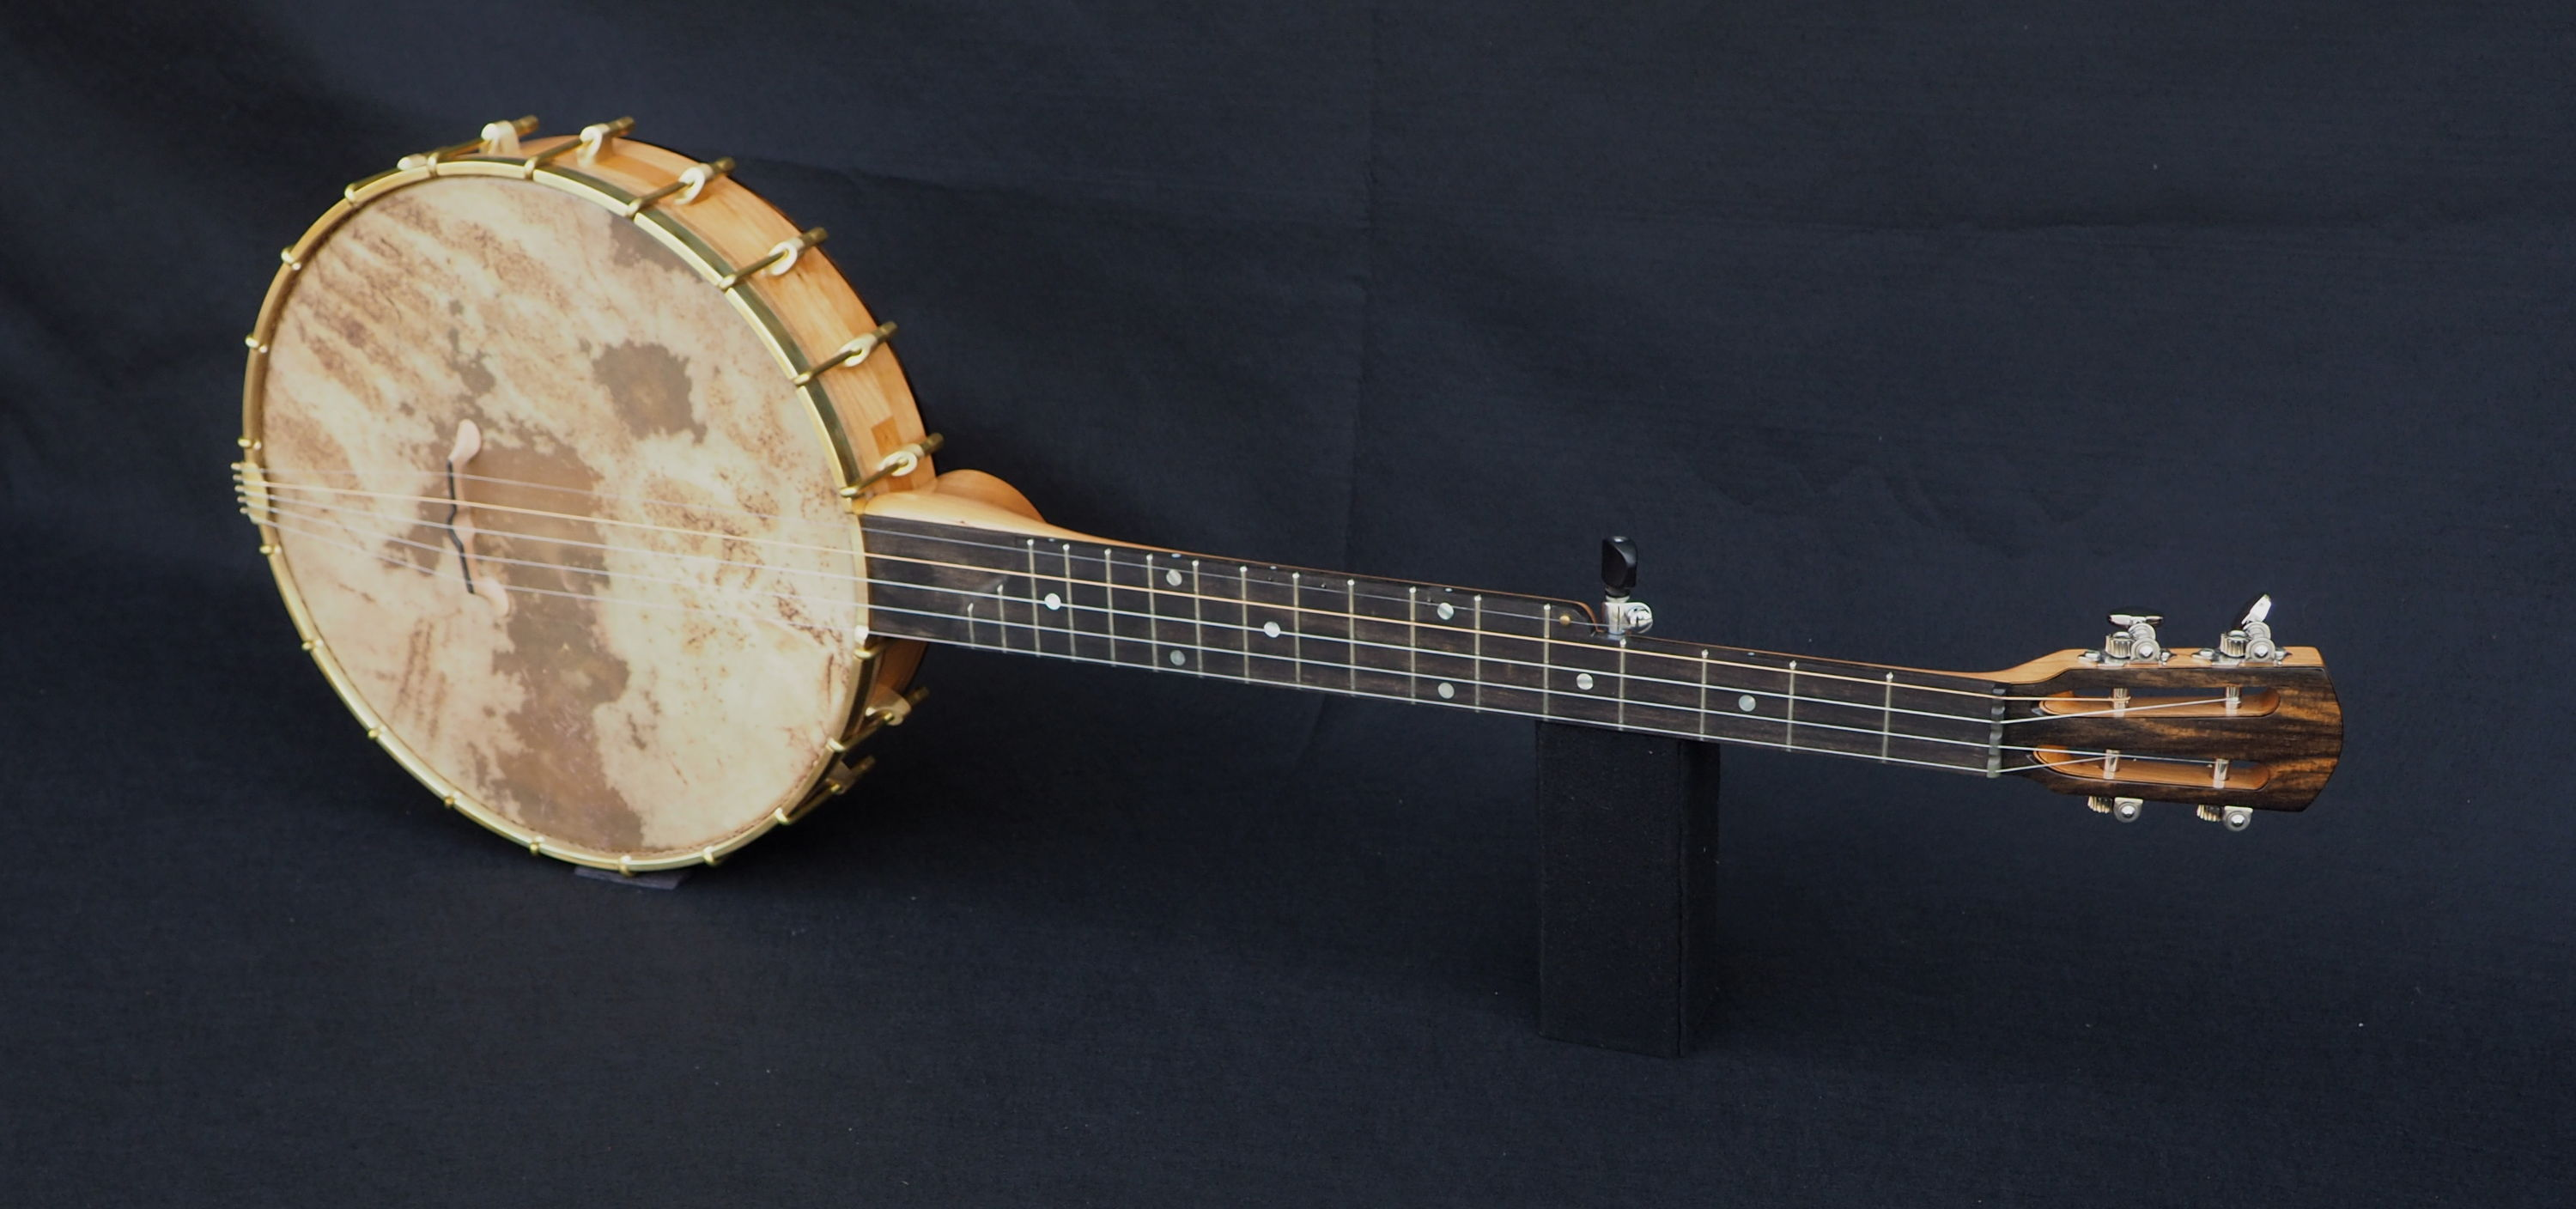 Slotted Headstock with Ebony Tone Ring Banjo